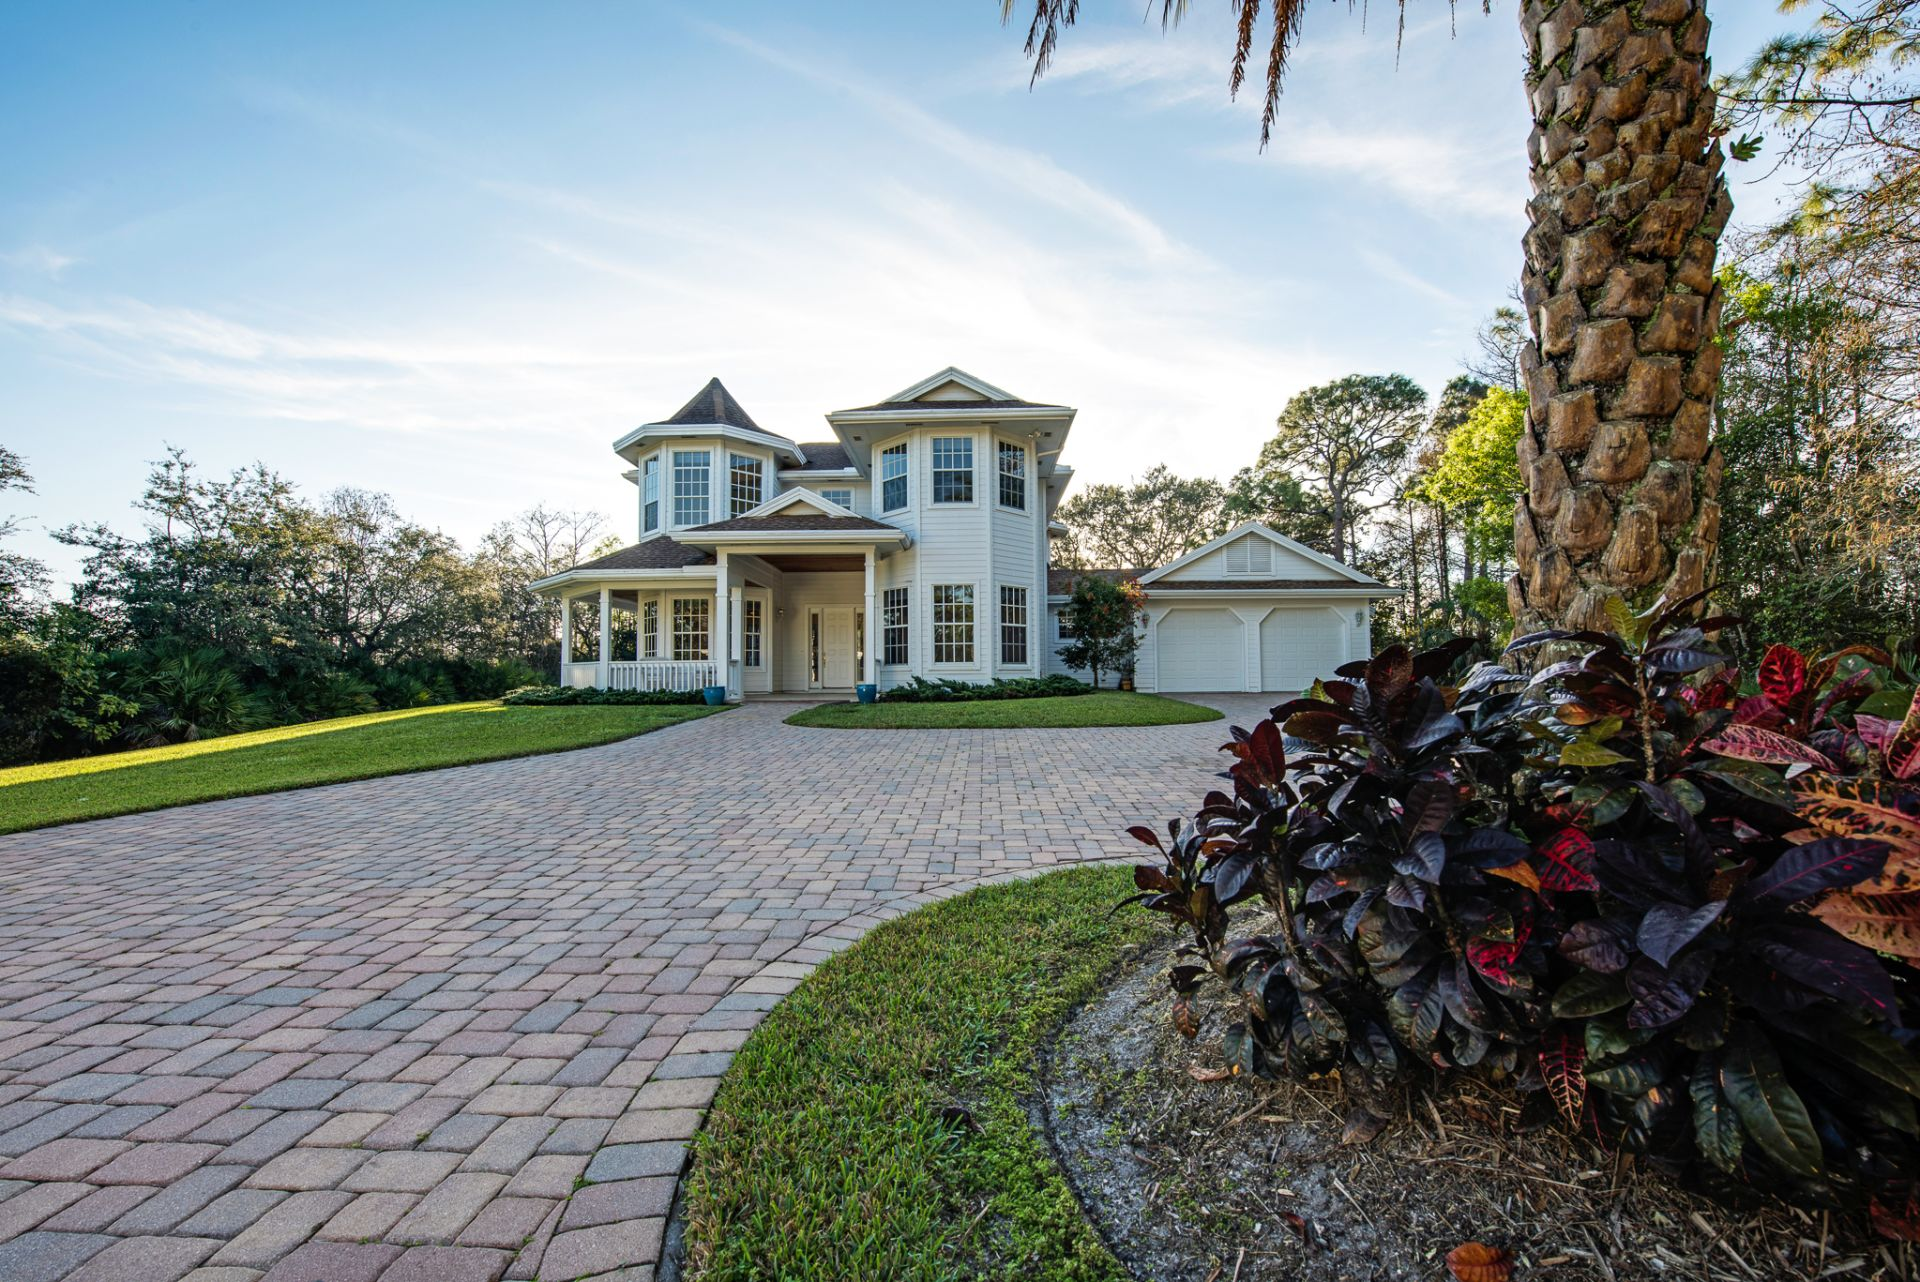 1001 SE Ranch Rd, Jupiter, FL | Ranch Estates @ Ranch Colony